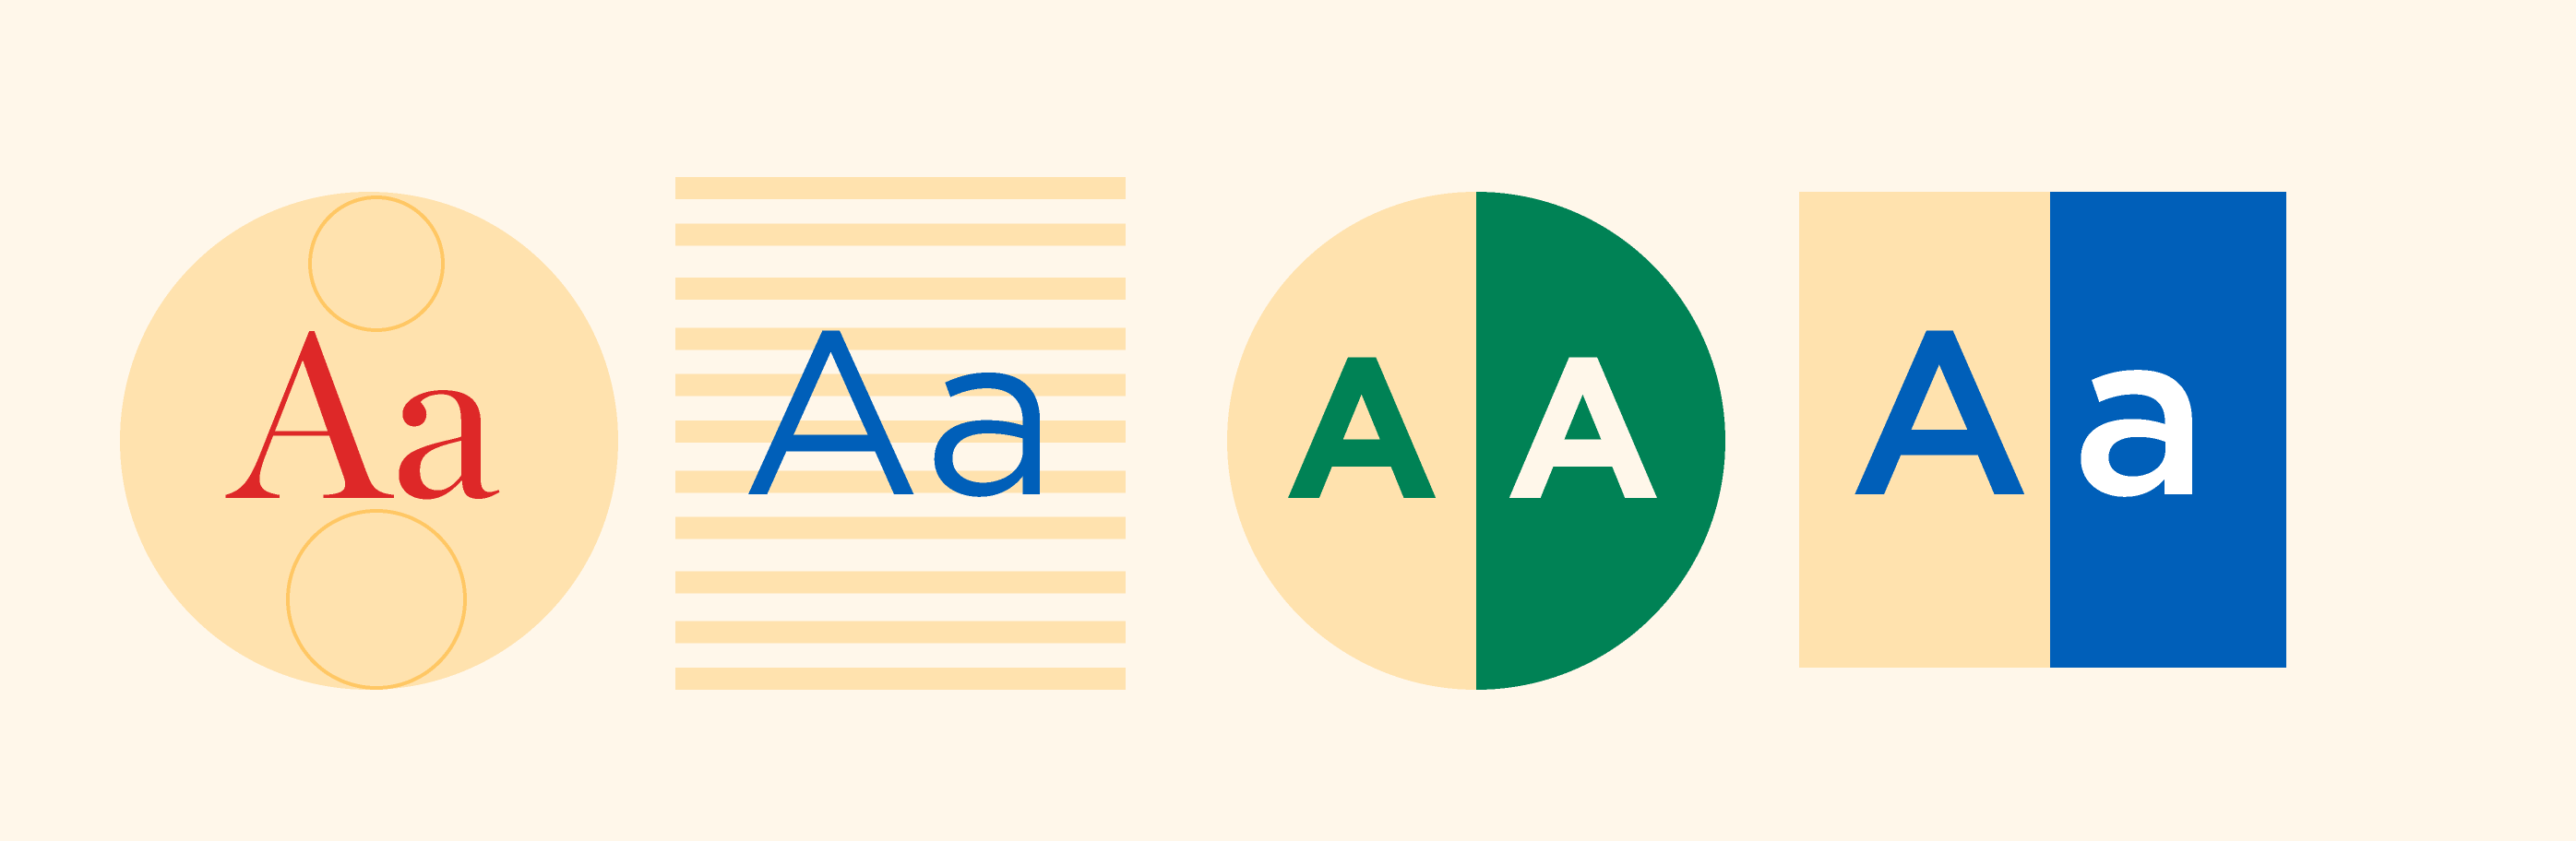 Illustration of Currency typefaces